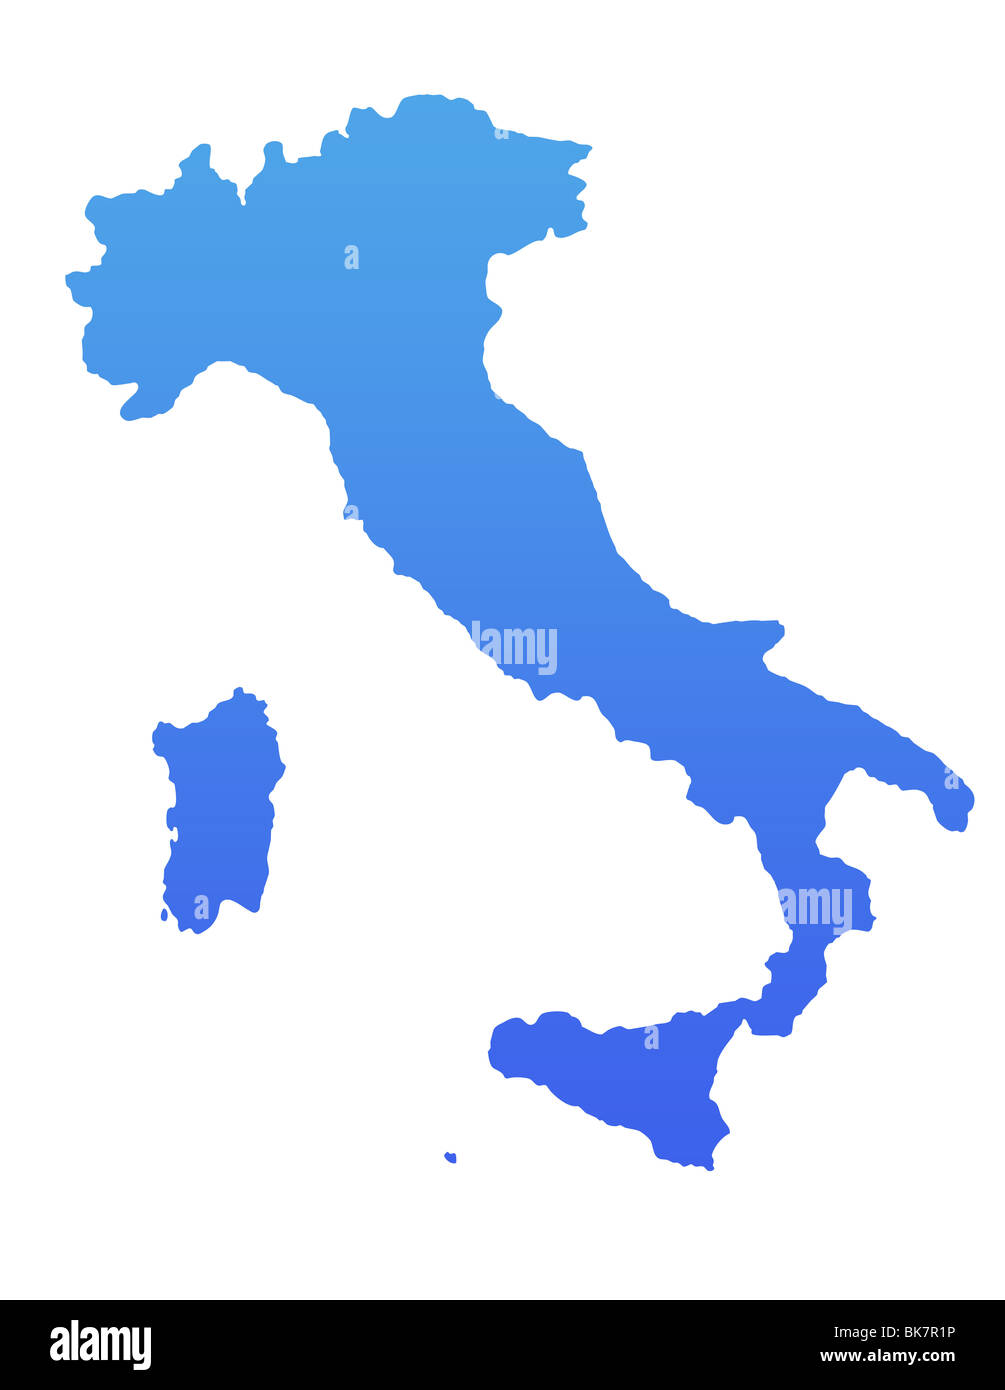 Italy Map Stock Photos & Italy Map Stock Images - Alamy